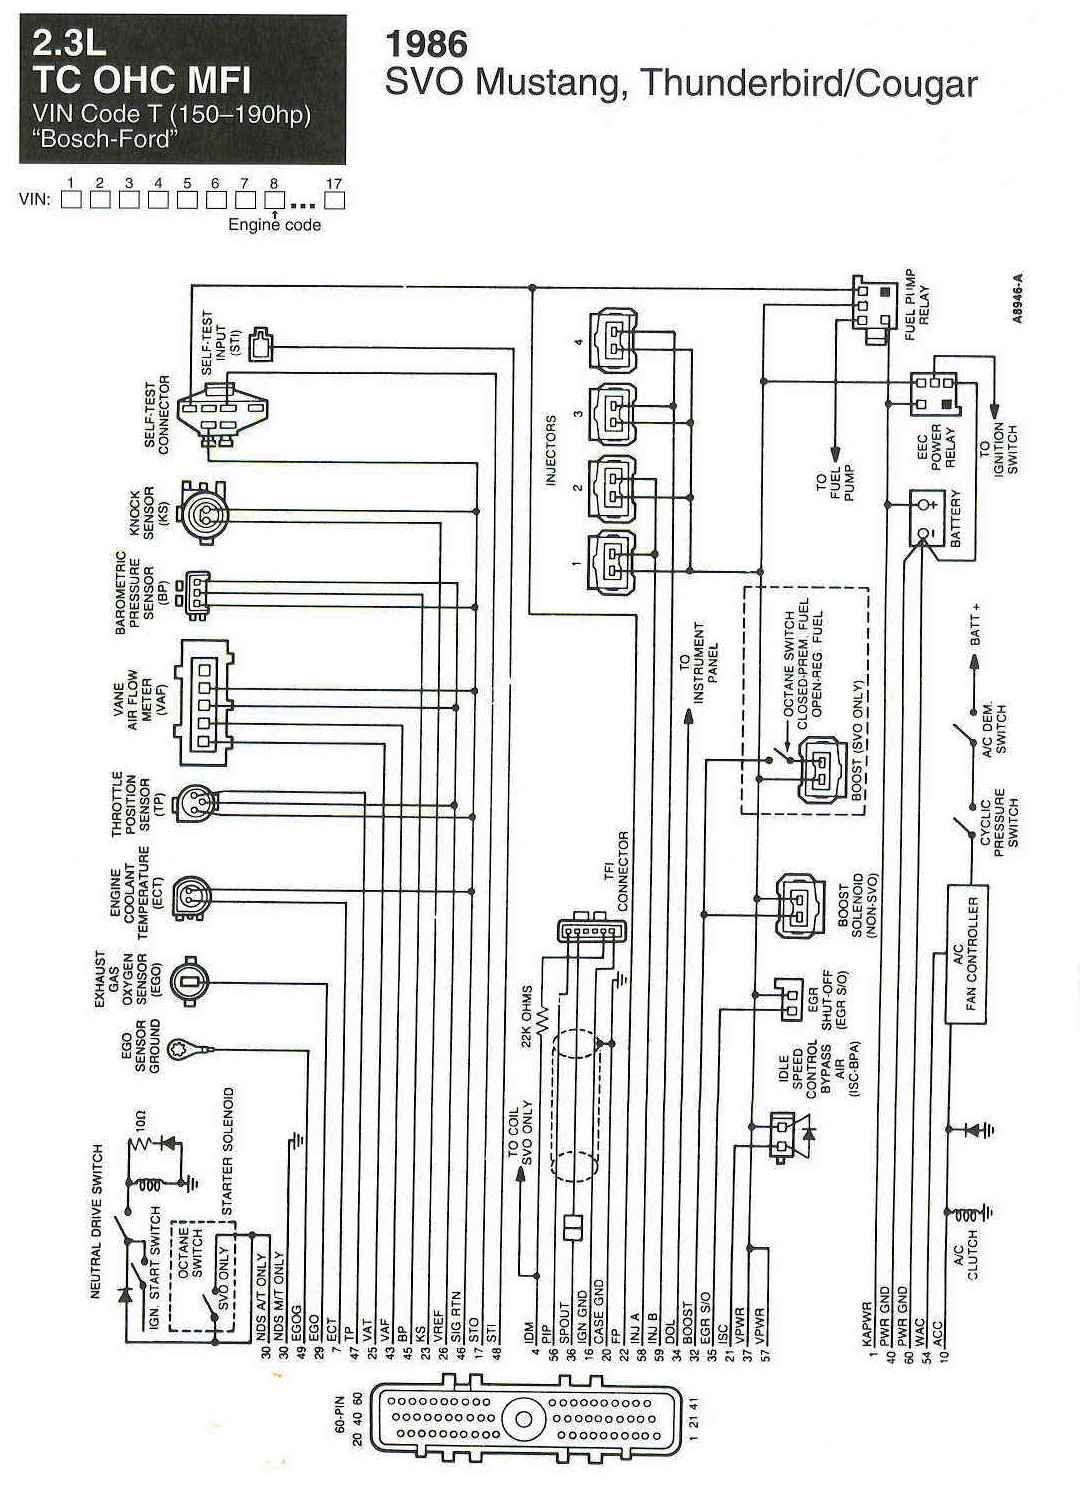 86 Svo Mustang Wiring Diagram Worksheet And 2006 Ford Ranger Door Latch Free Download Diagrams For Forum Rh Allfordmustangs Com 1985 Cluster